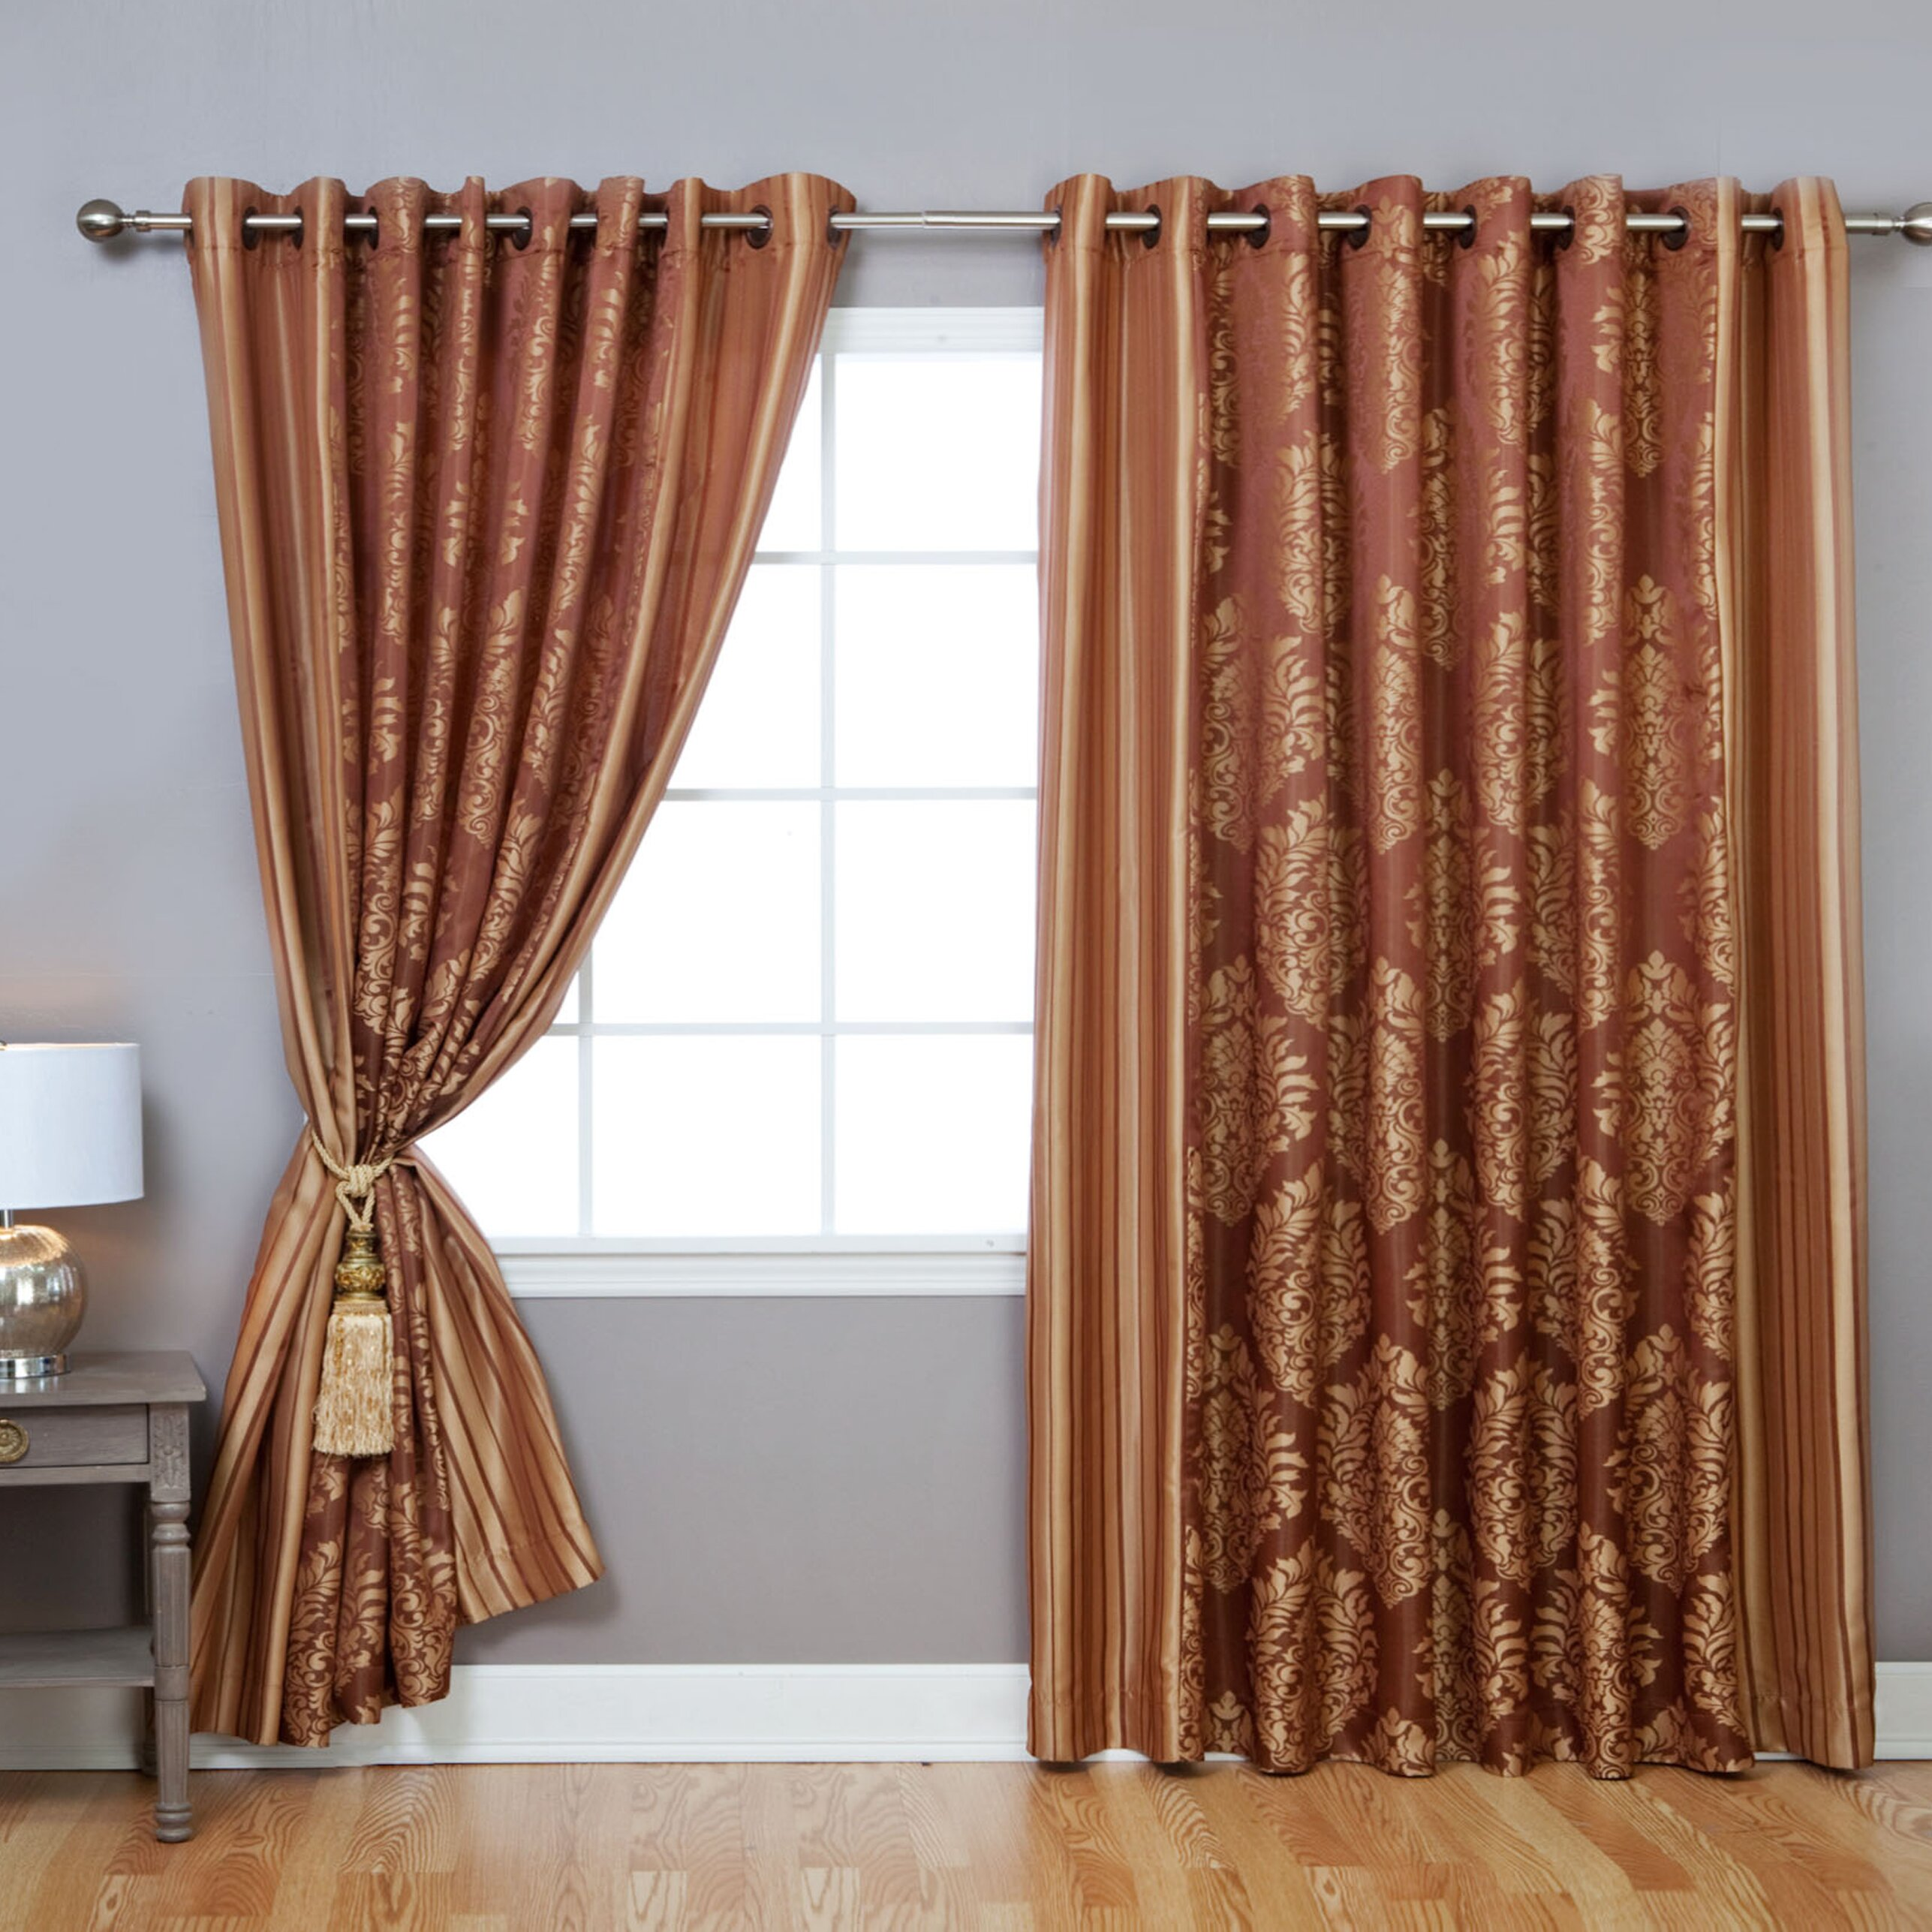 Best home fashion inc wide width damask jacquard grommet for Home drapes and curtains